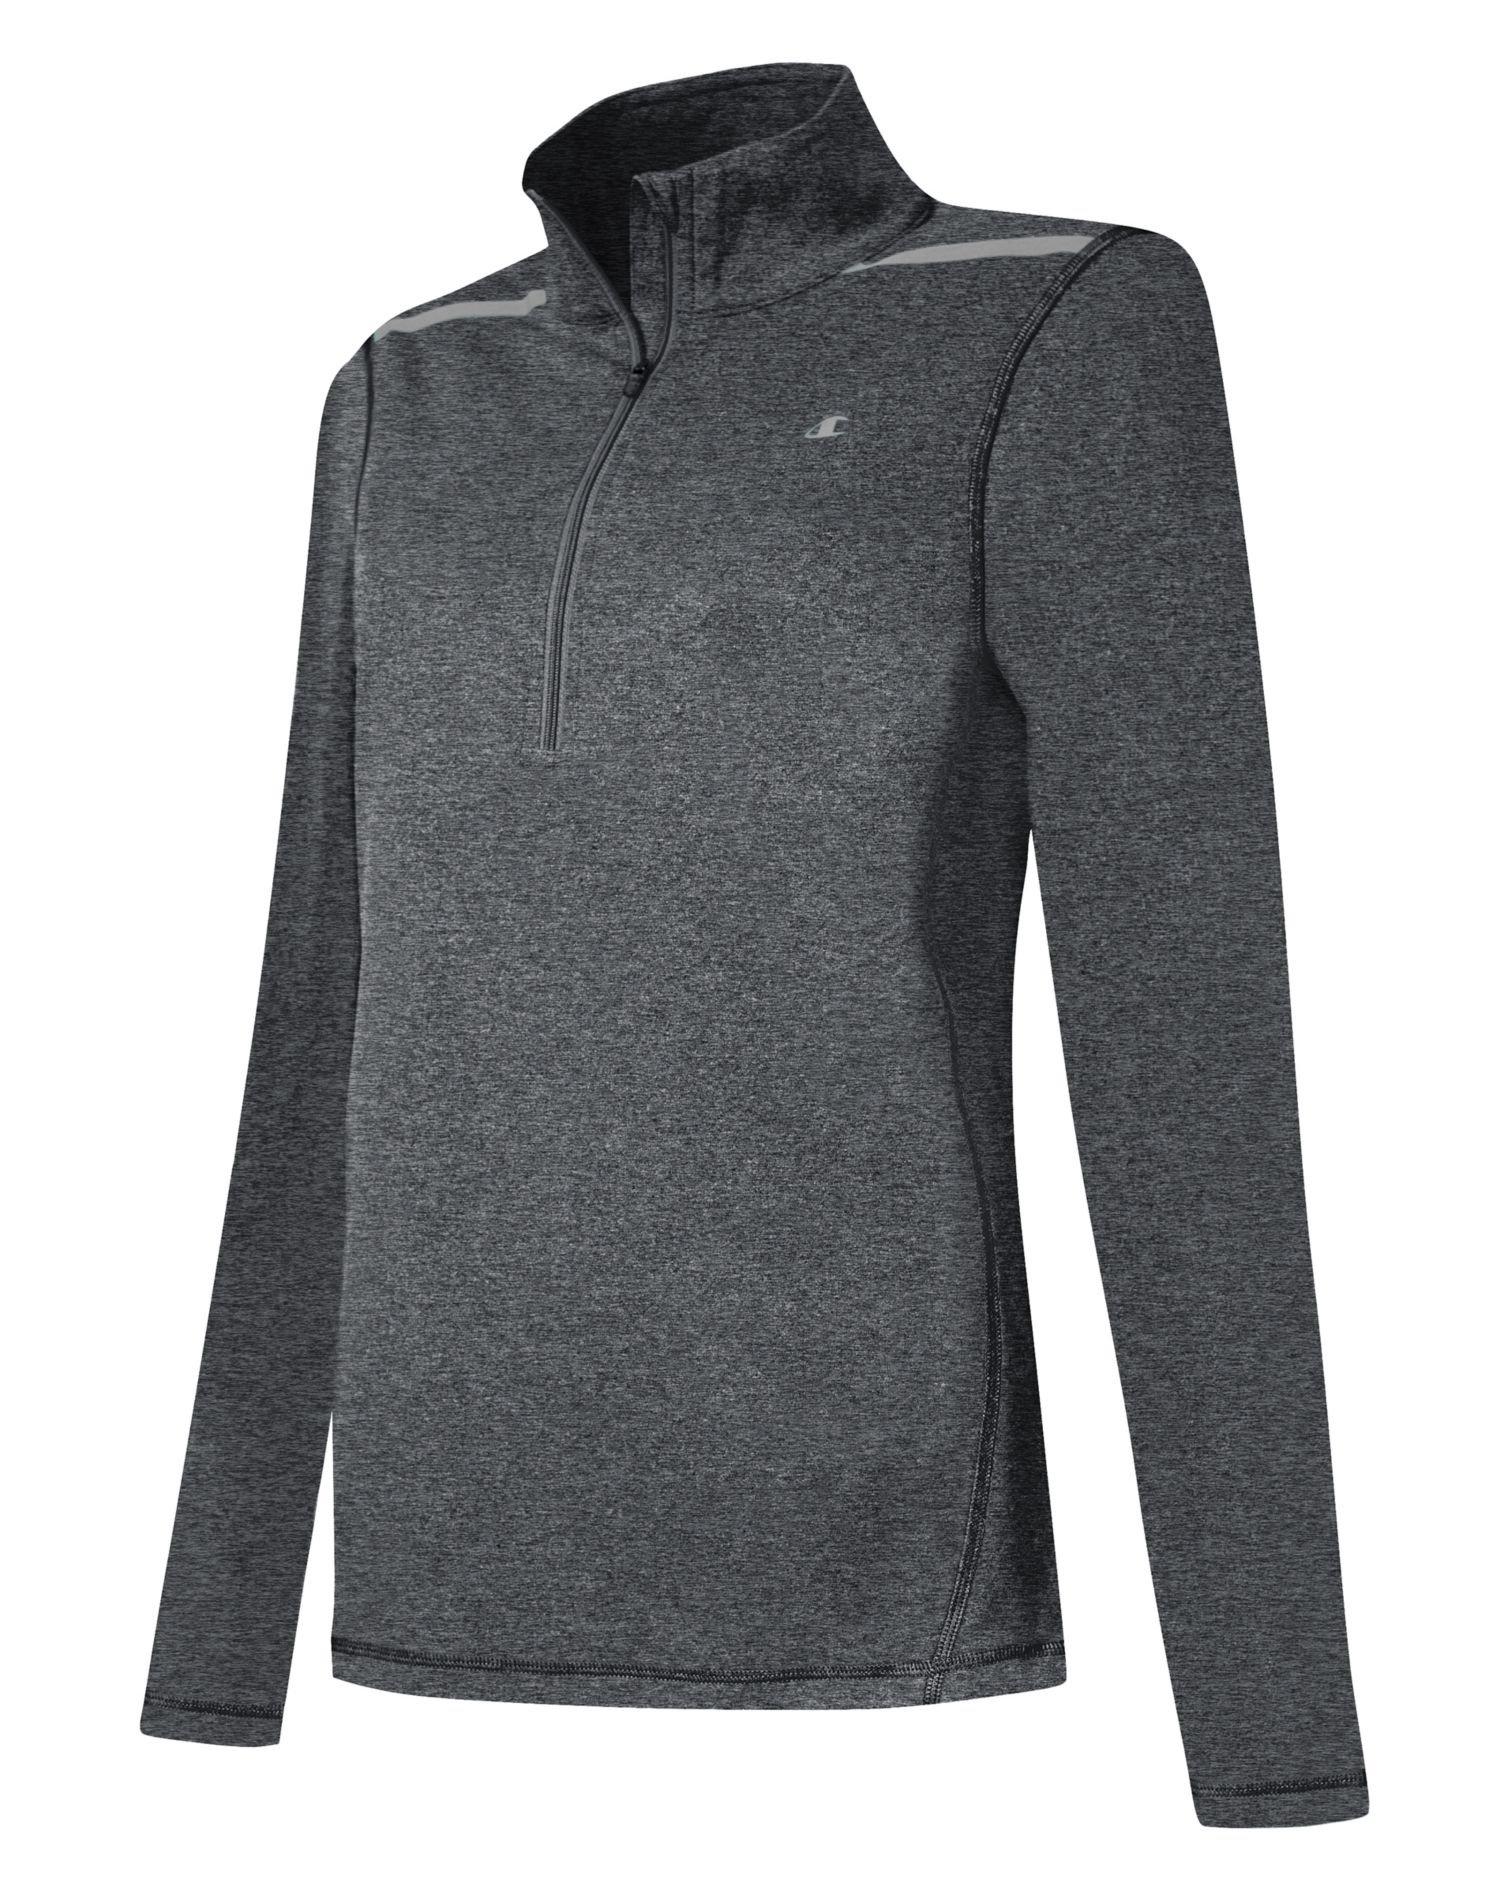 Champion Women`s Gear Marathon 1/4 Zip Long-Sleeve Top, W0548T, XS